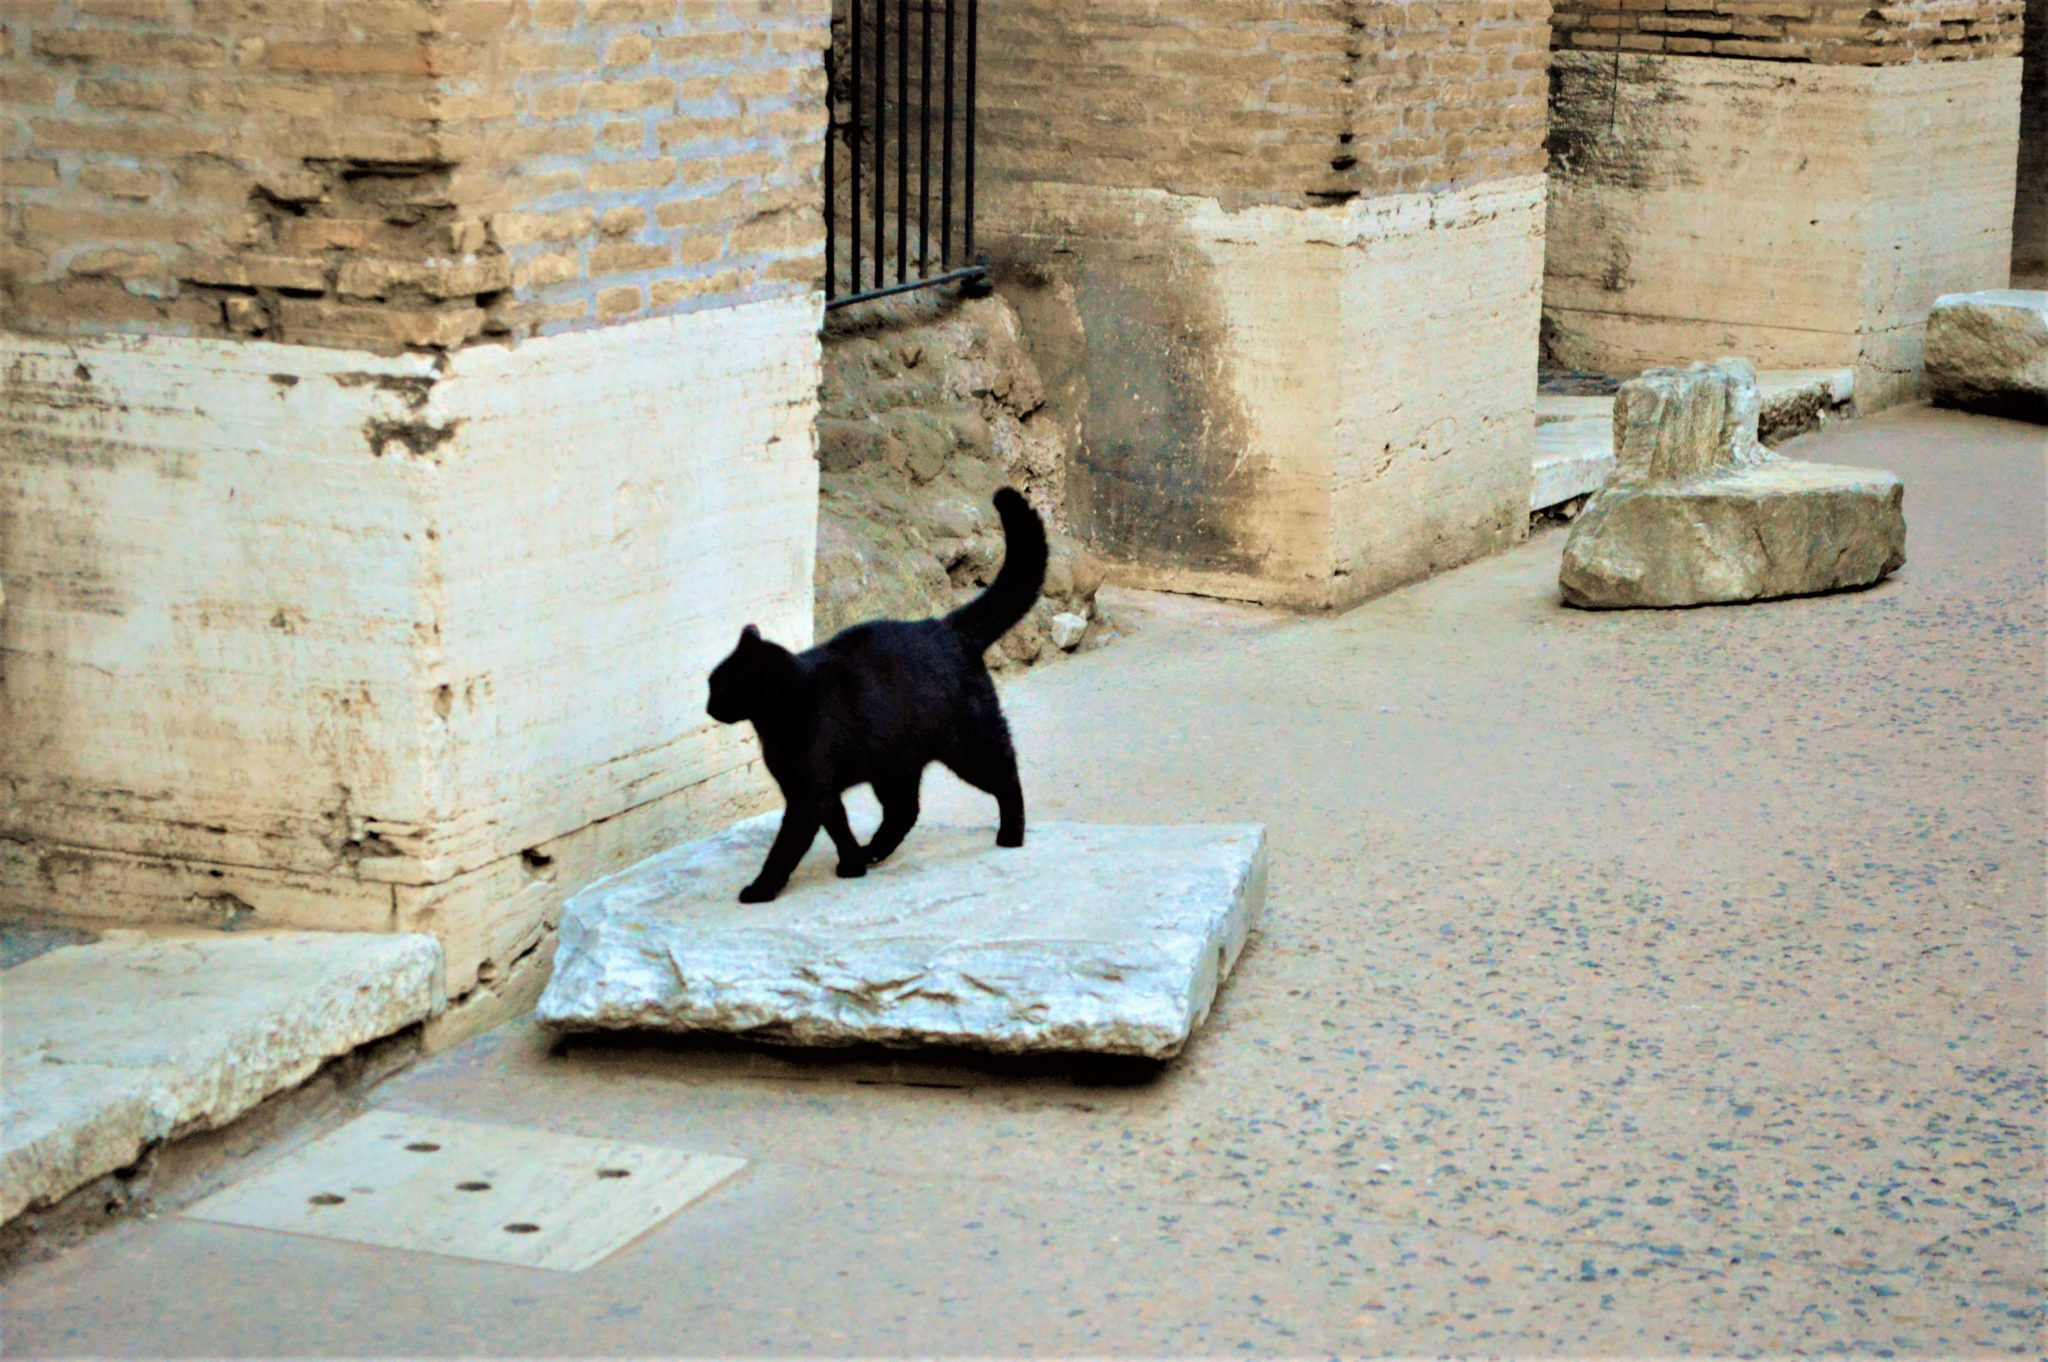 Resident cat inside the Colosseum, Rome, Italy